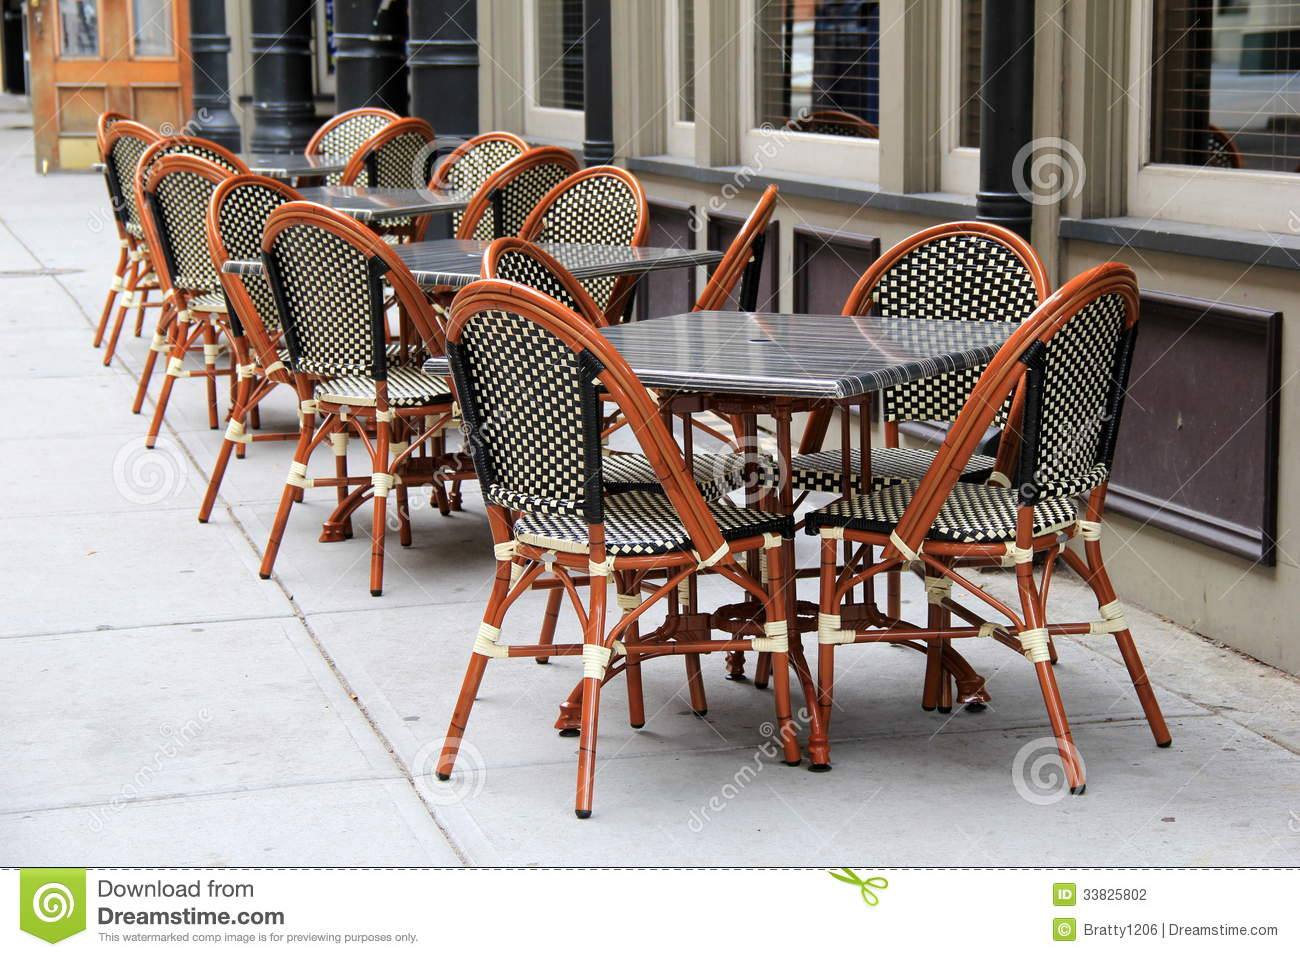 Gorgeous Cane Chairs And Tables Outside Restaurant Stock Photography Image 33825802